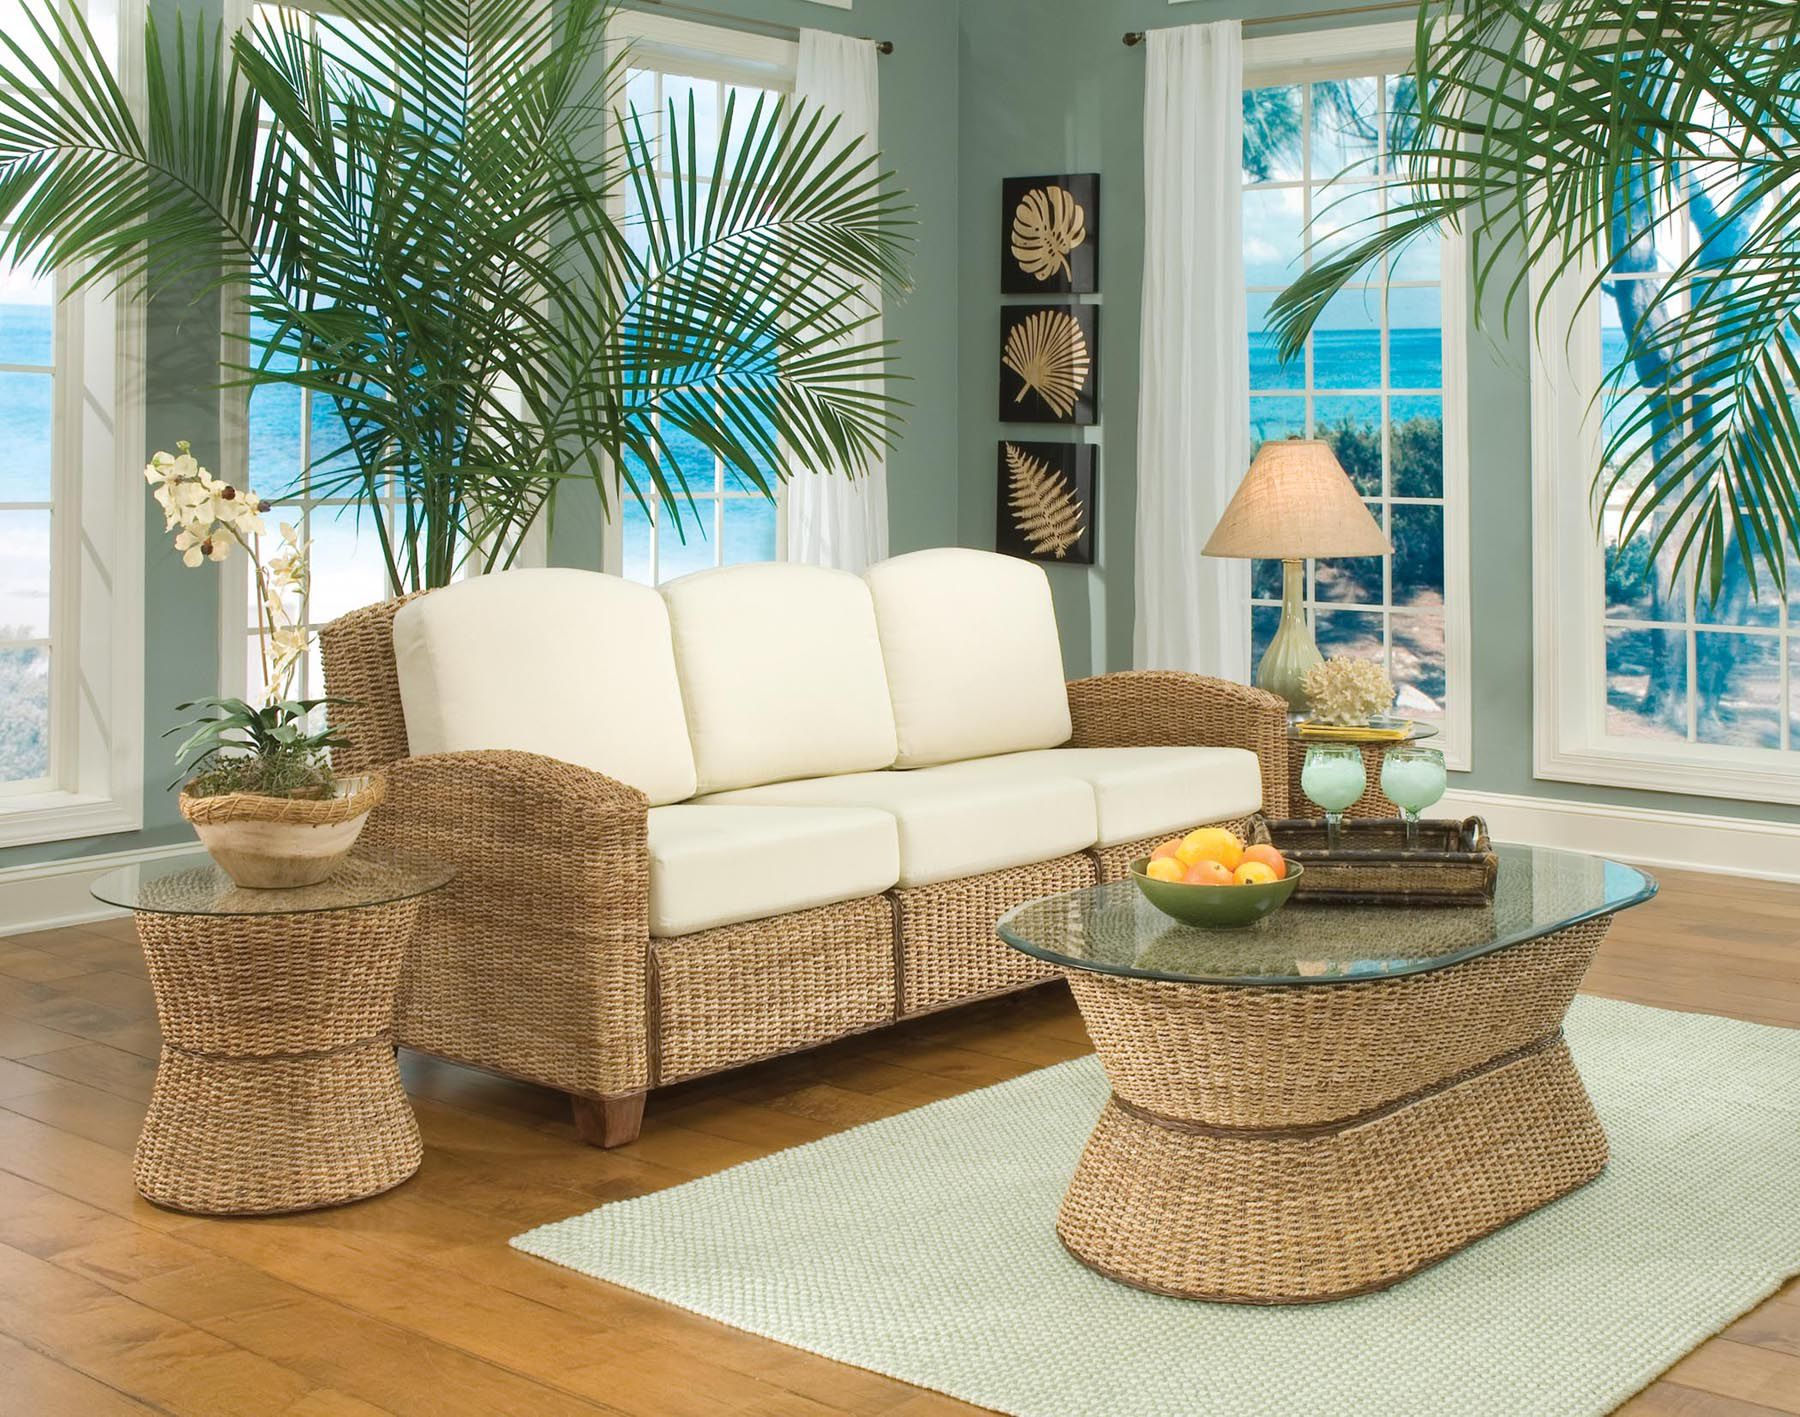 Home Styles Cabana Banana 3 Section Sofa Honey Oak Finish